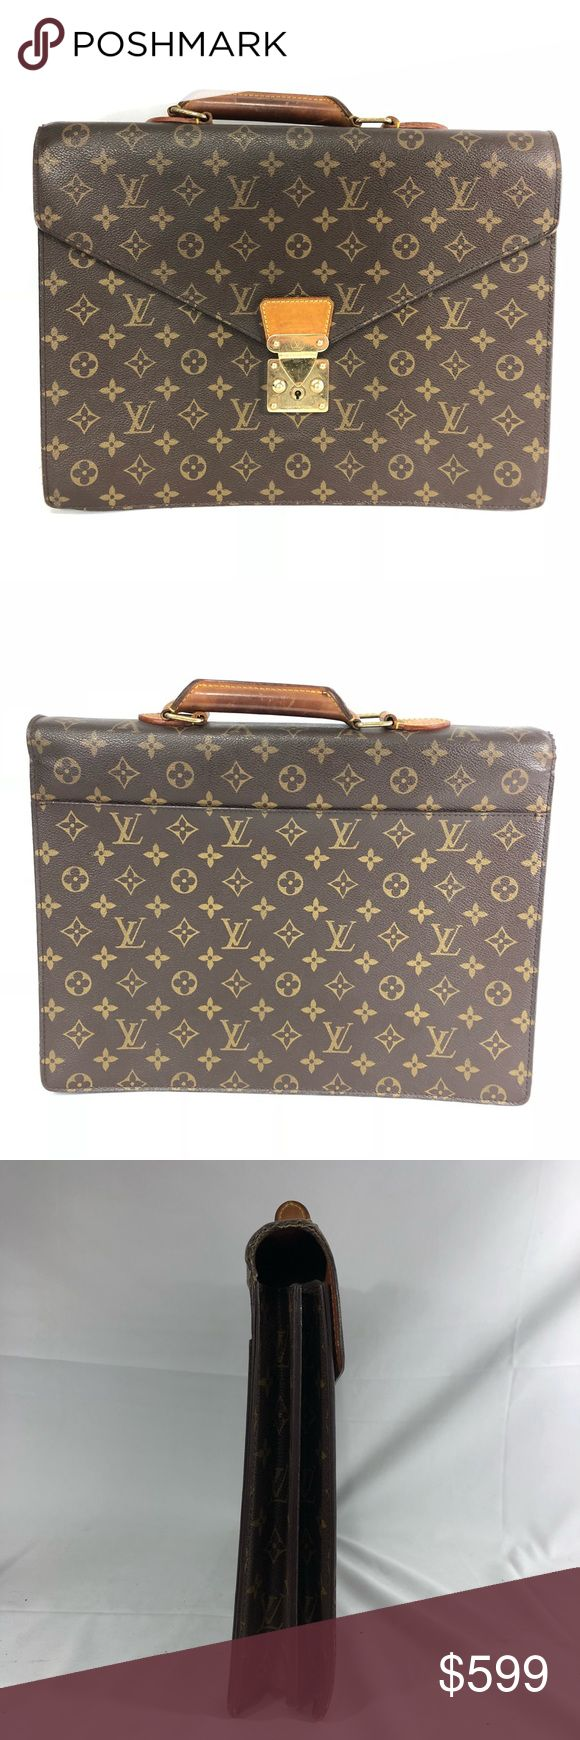 Authentic Louis Vuitton Briefcase/ folder case Brass tone hardware, clean vachetta and interior. Darkened patina and tarnished hardware. EUC. Hold large folders. Please see all photos. No trades please. Louis Vuitton Bags Laptop Bags